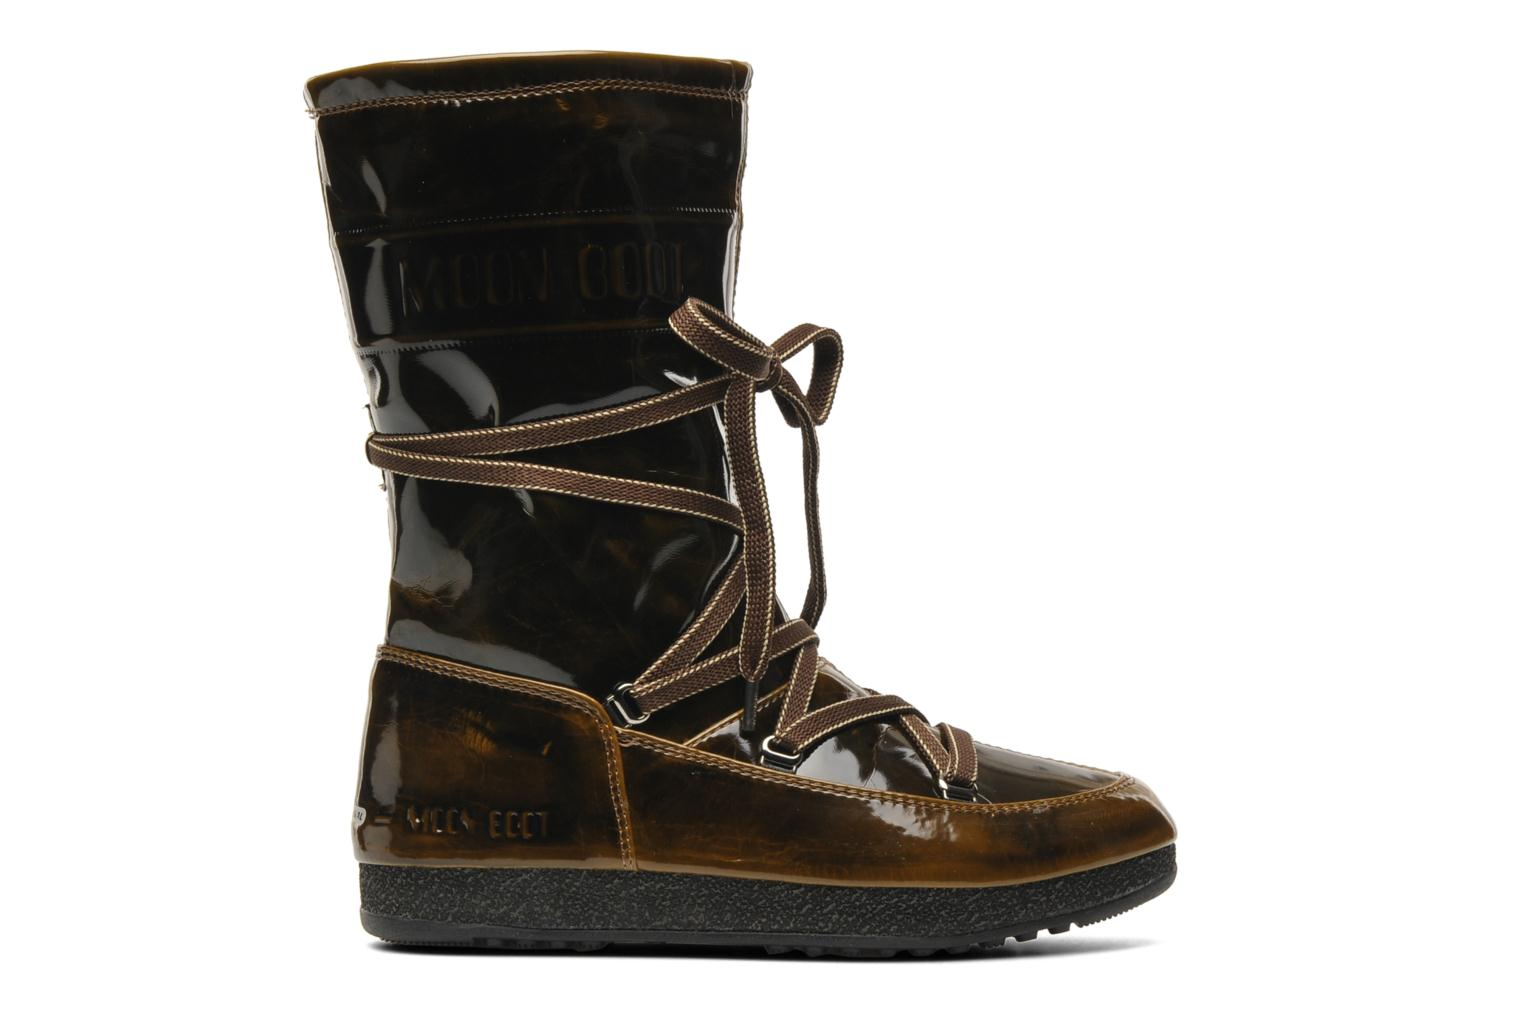 5th Avenue Bronze-Black